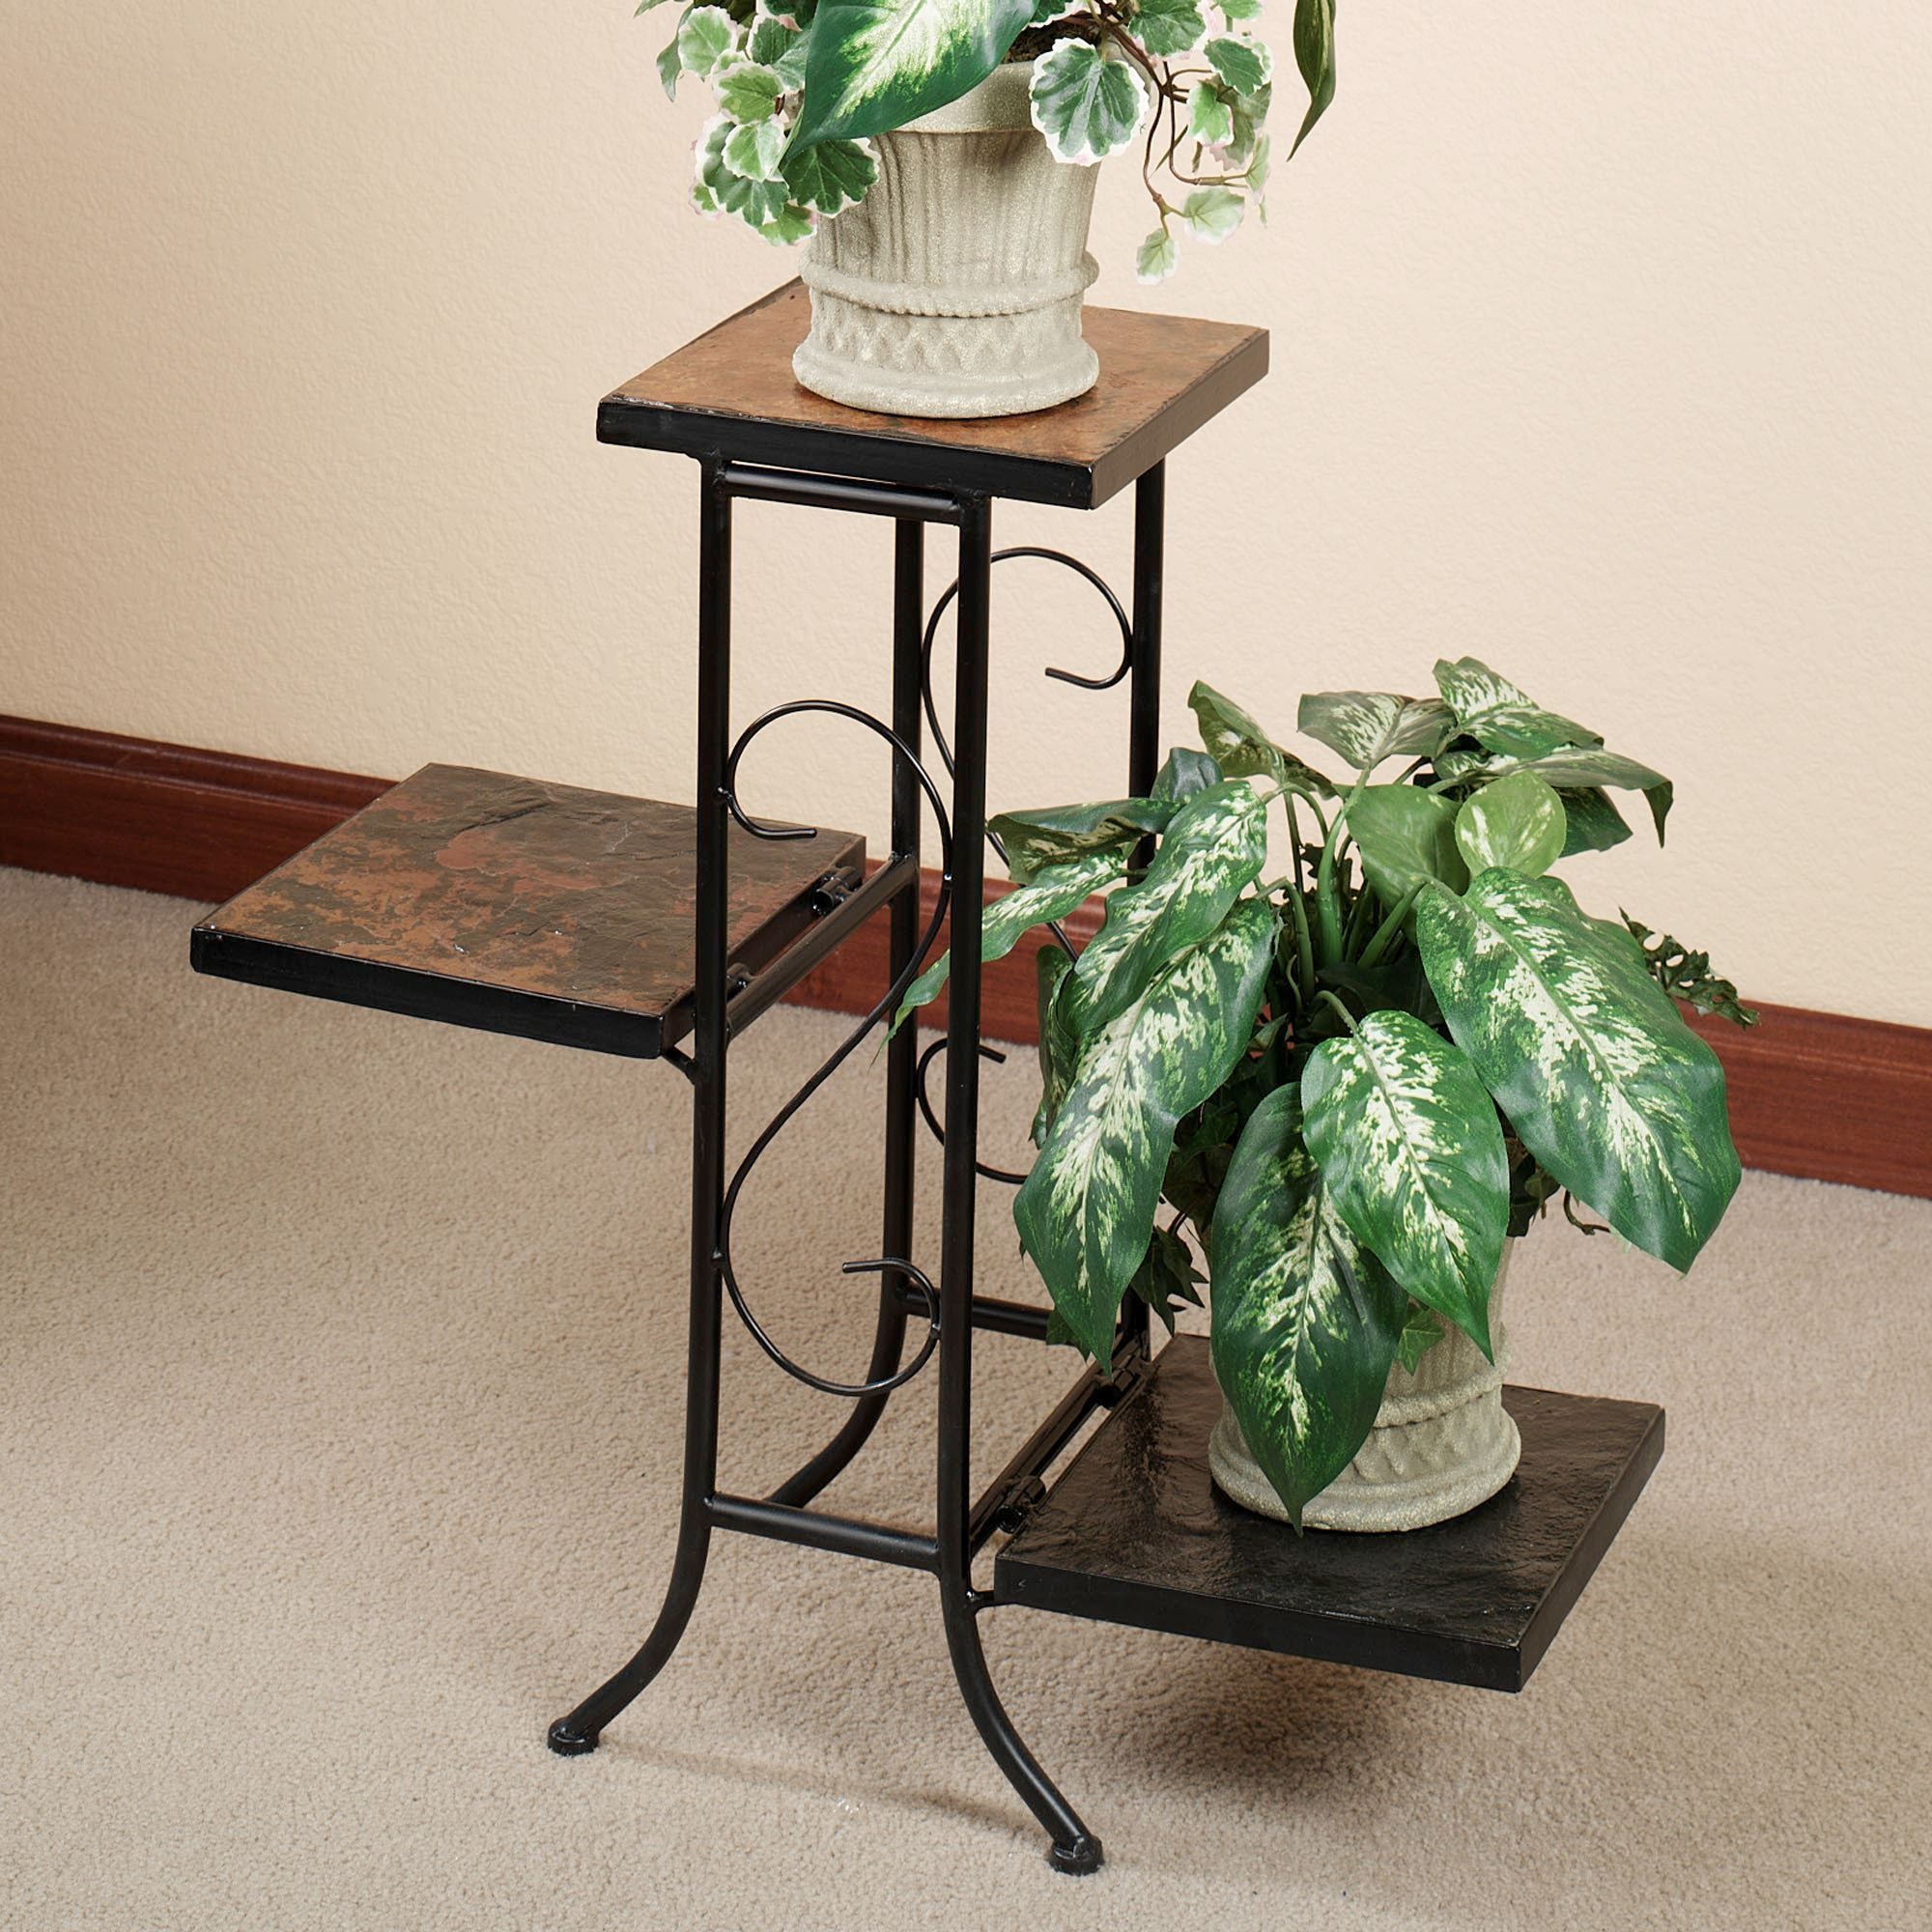 Corner Table For Plants Porterville Indoor Outdoor Tiered Plant Stand Plant